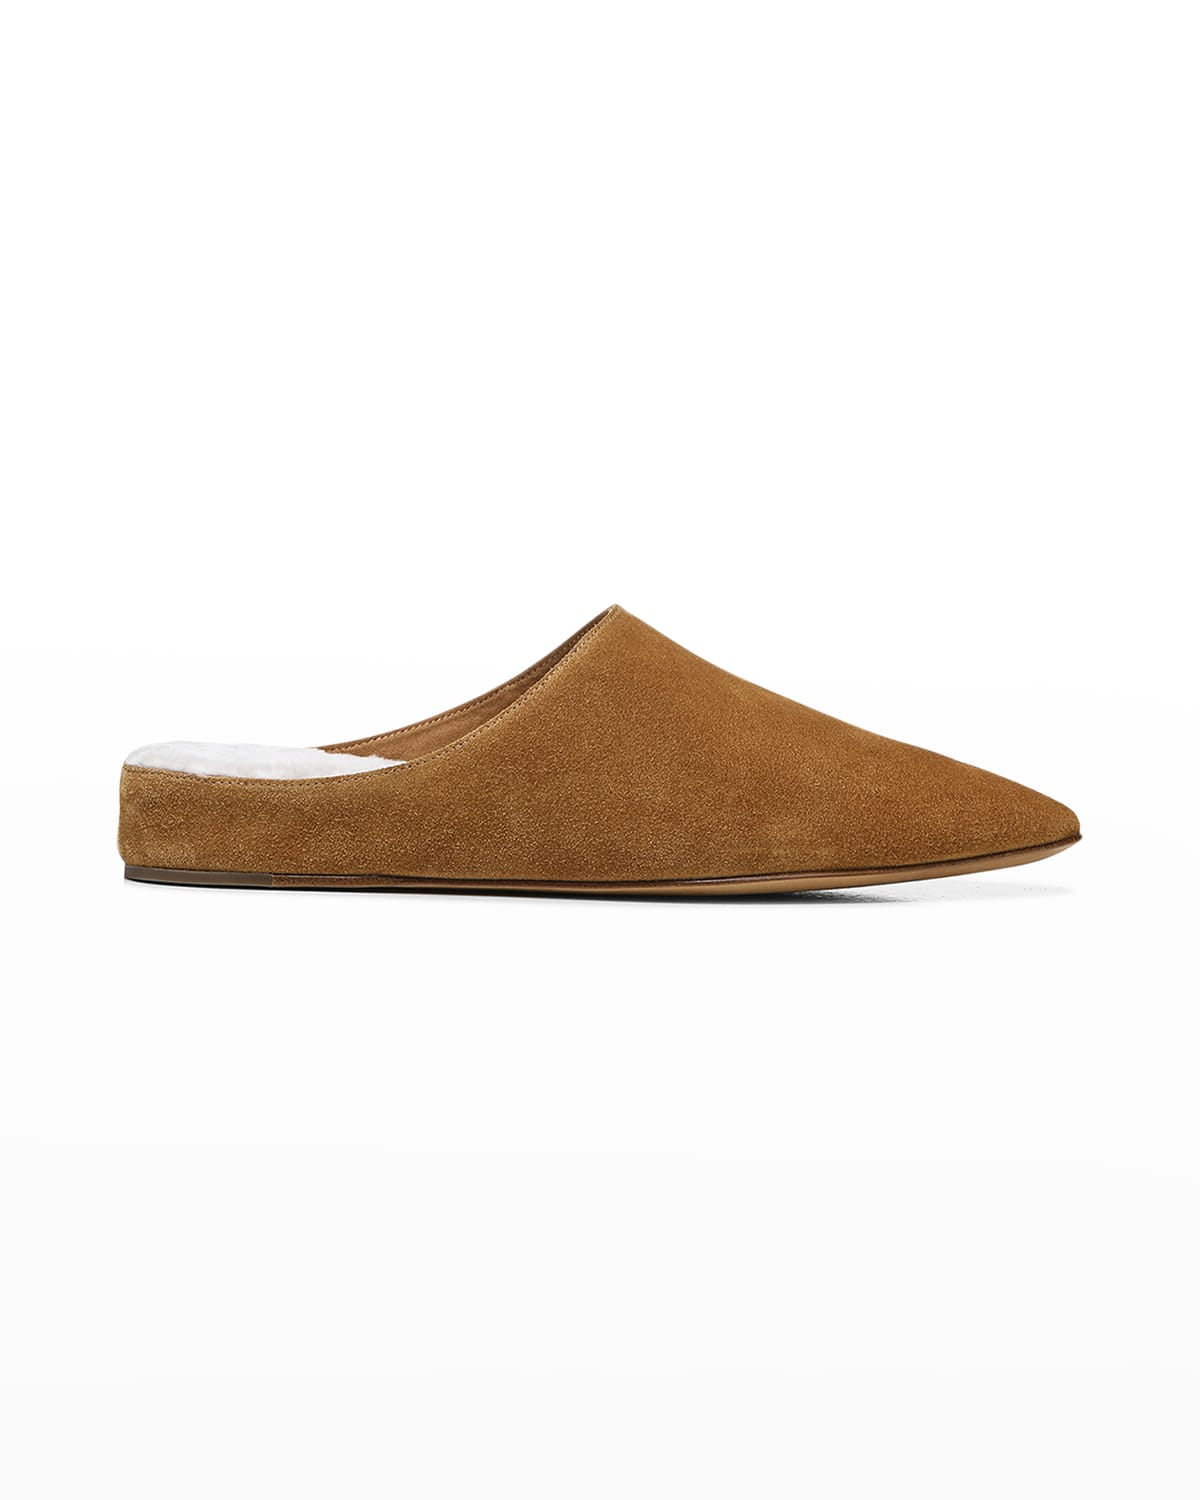 Frost Suede Shearling Ballerina Mules